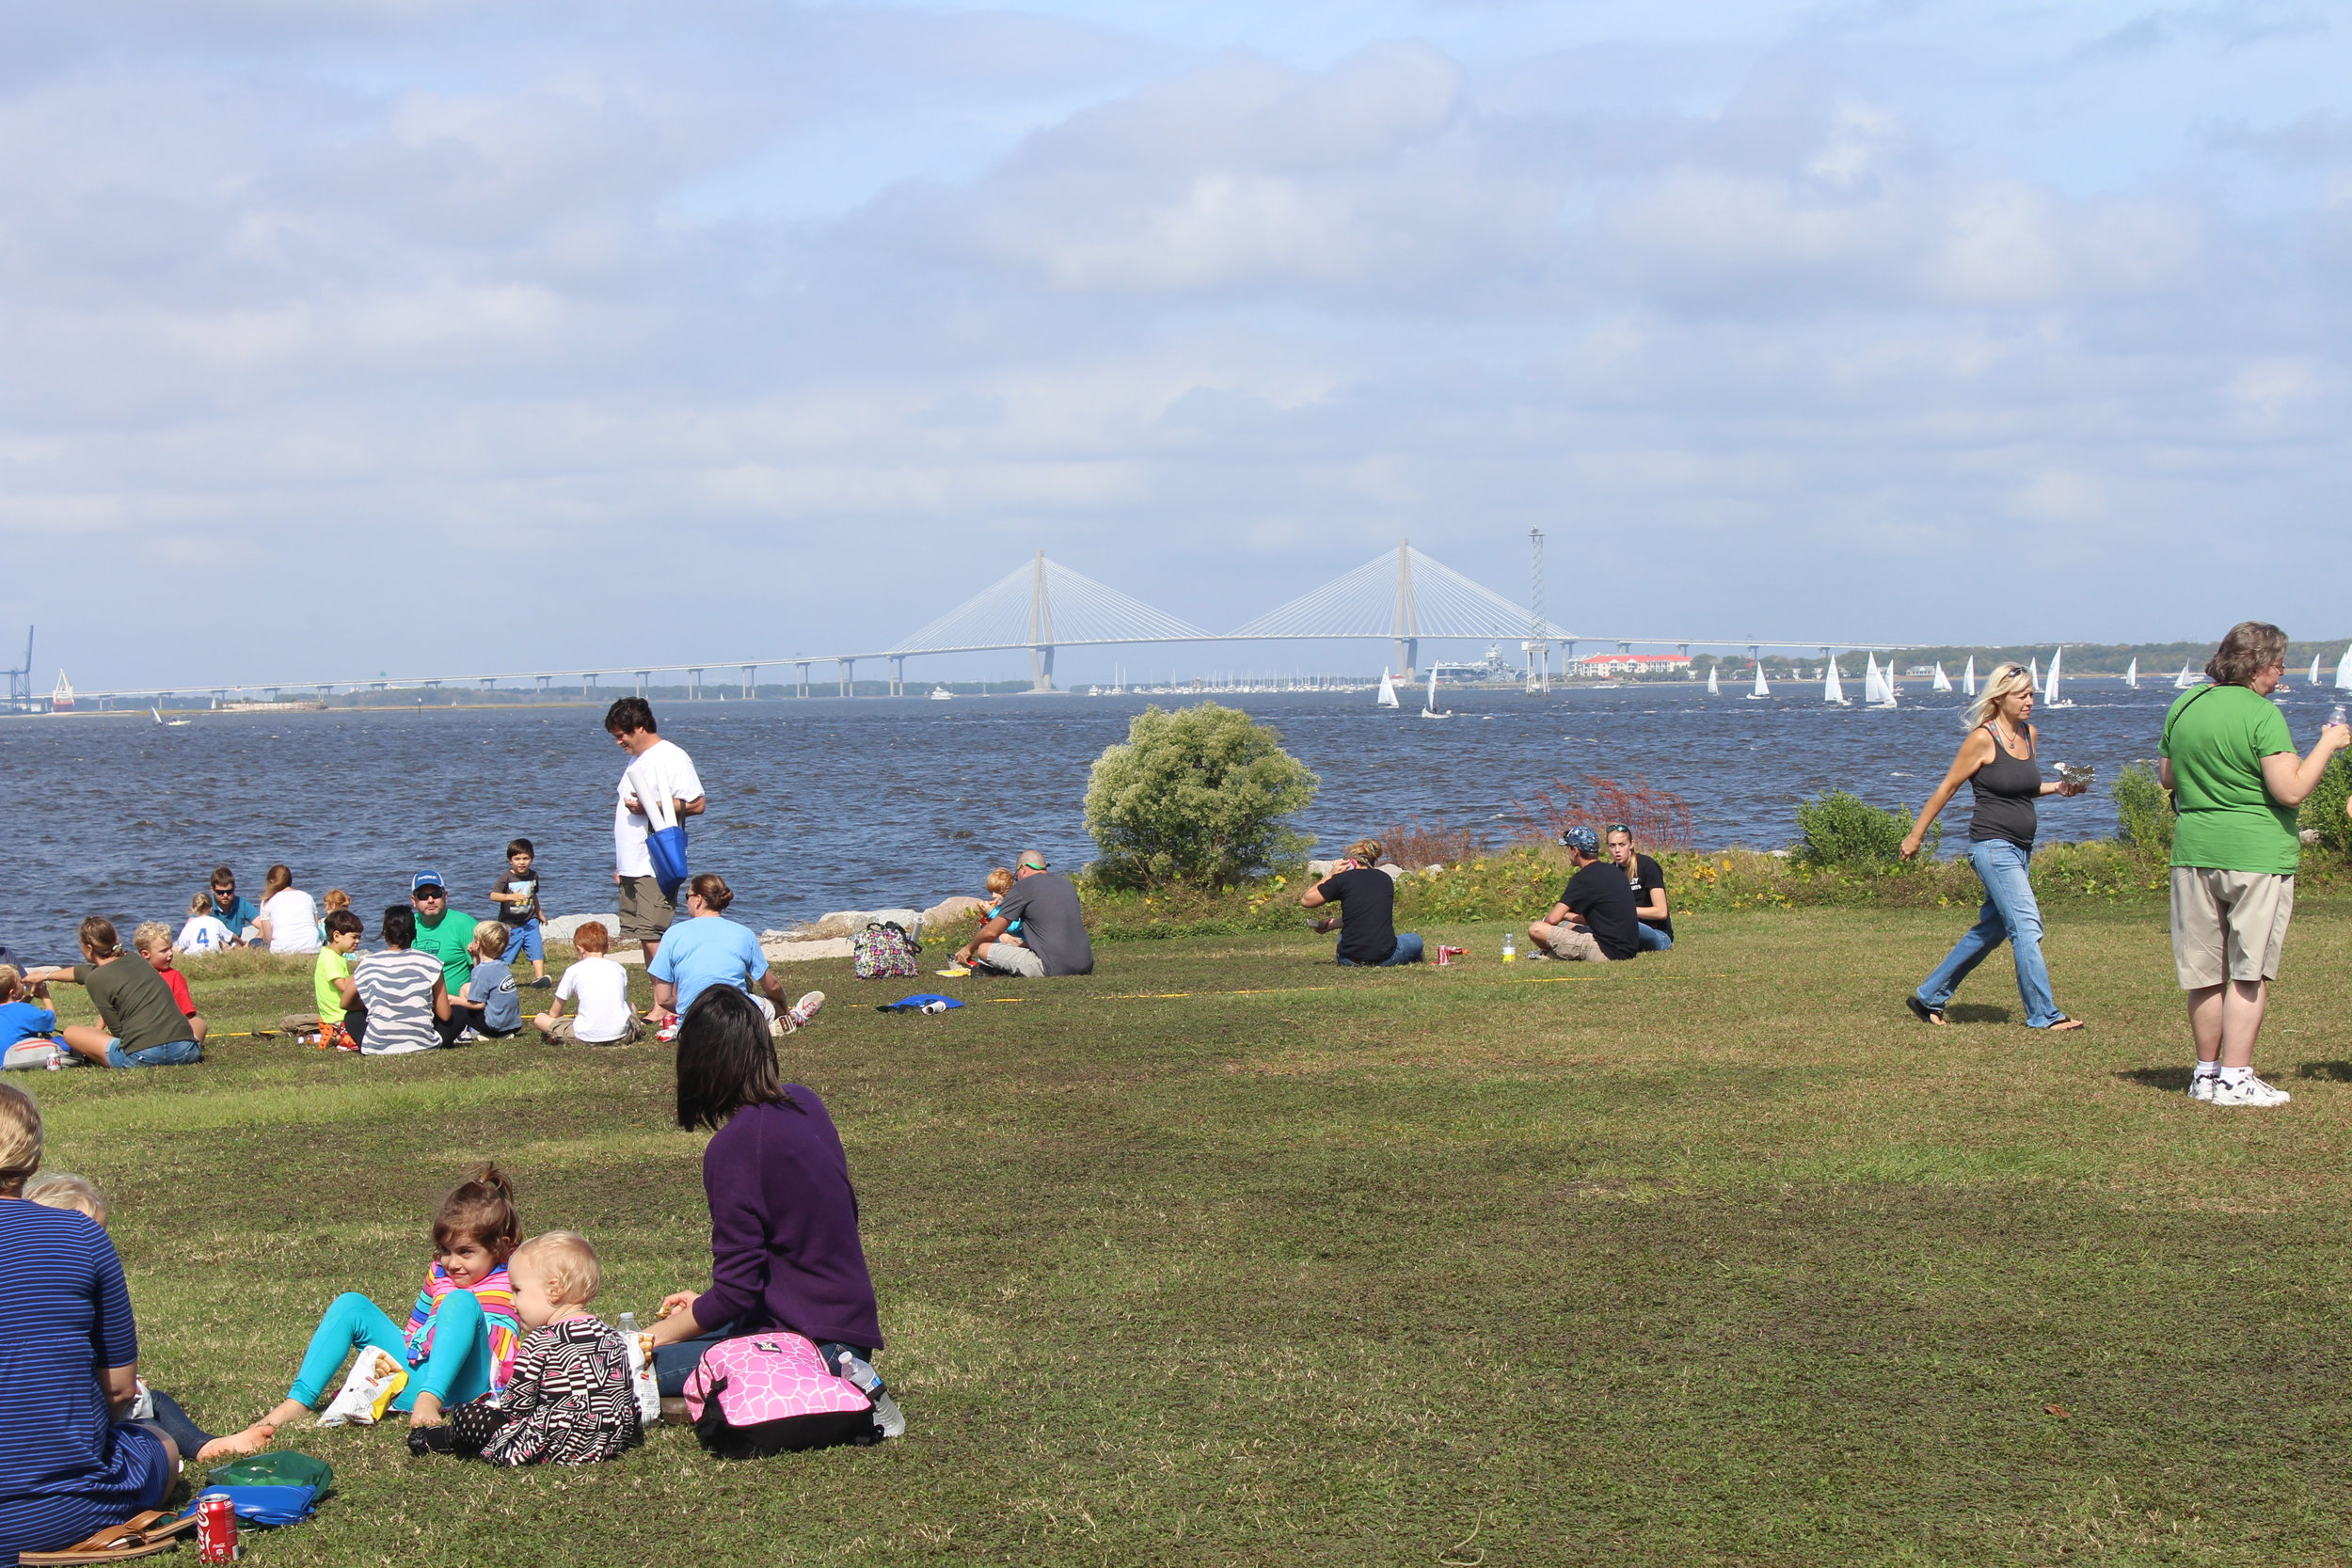 Bring a picnic or buy a lunch on site and enjoy the beautiful views from our Marine Resources Center.(Photo: E. Weeks/SCDNR)